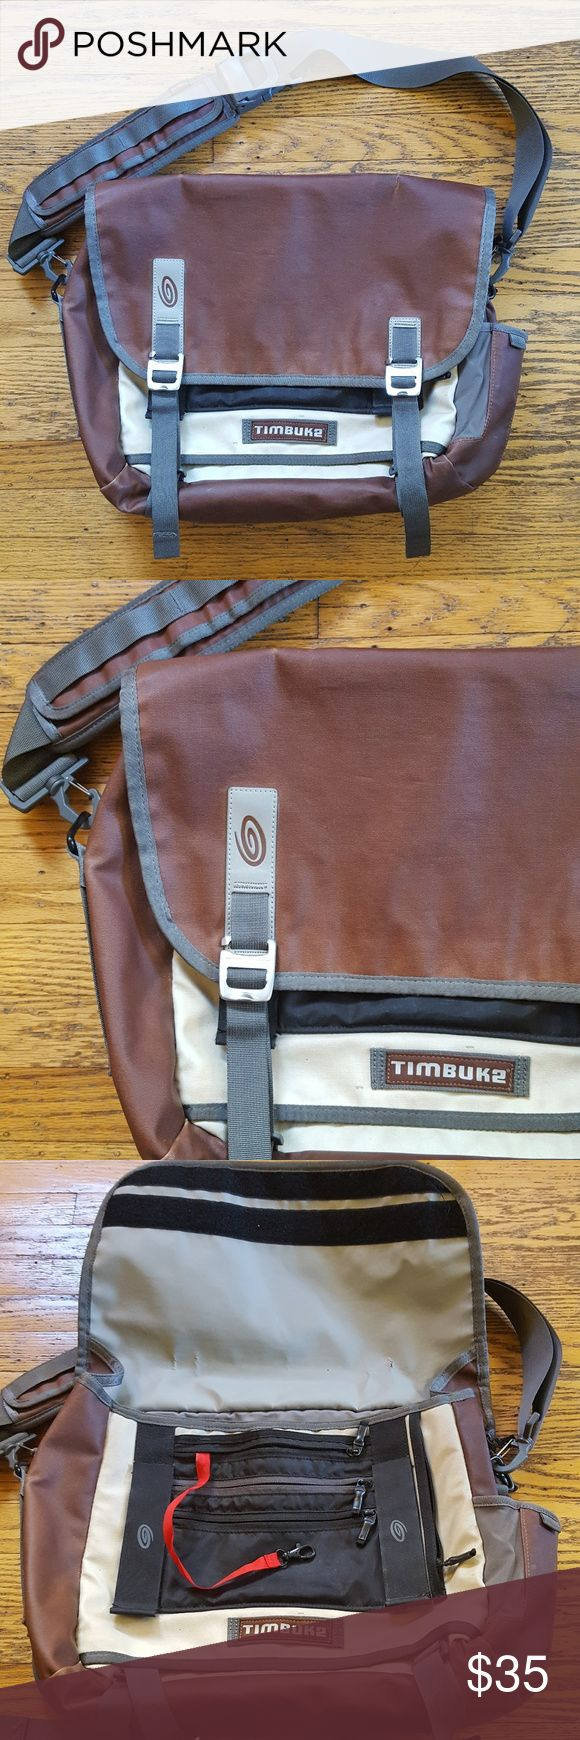 Timbuk2 Laptop Messenger Shoulder Bike Bag Gently …